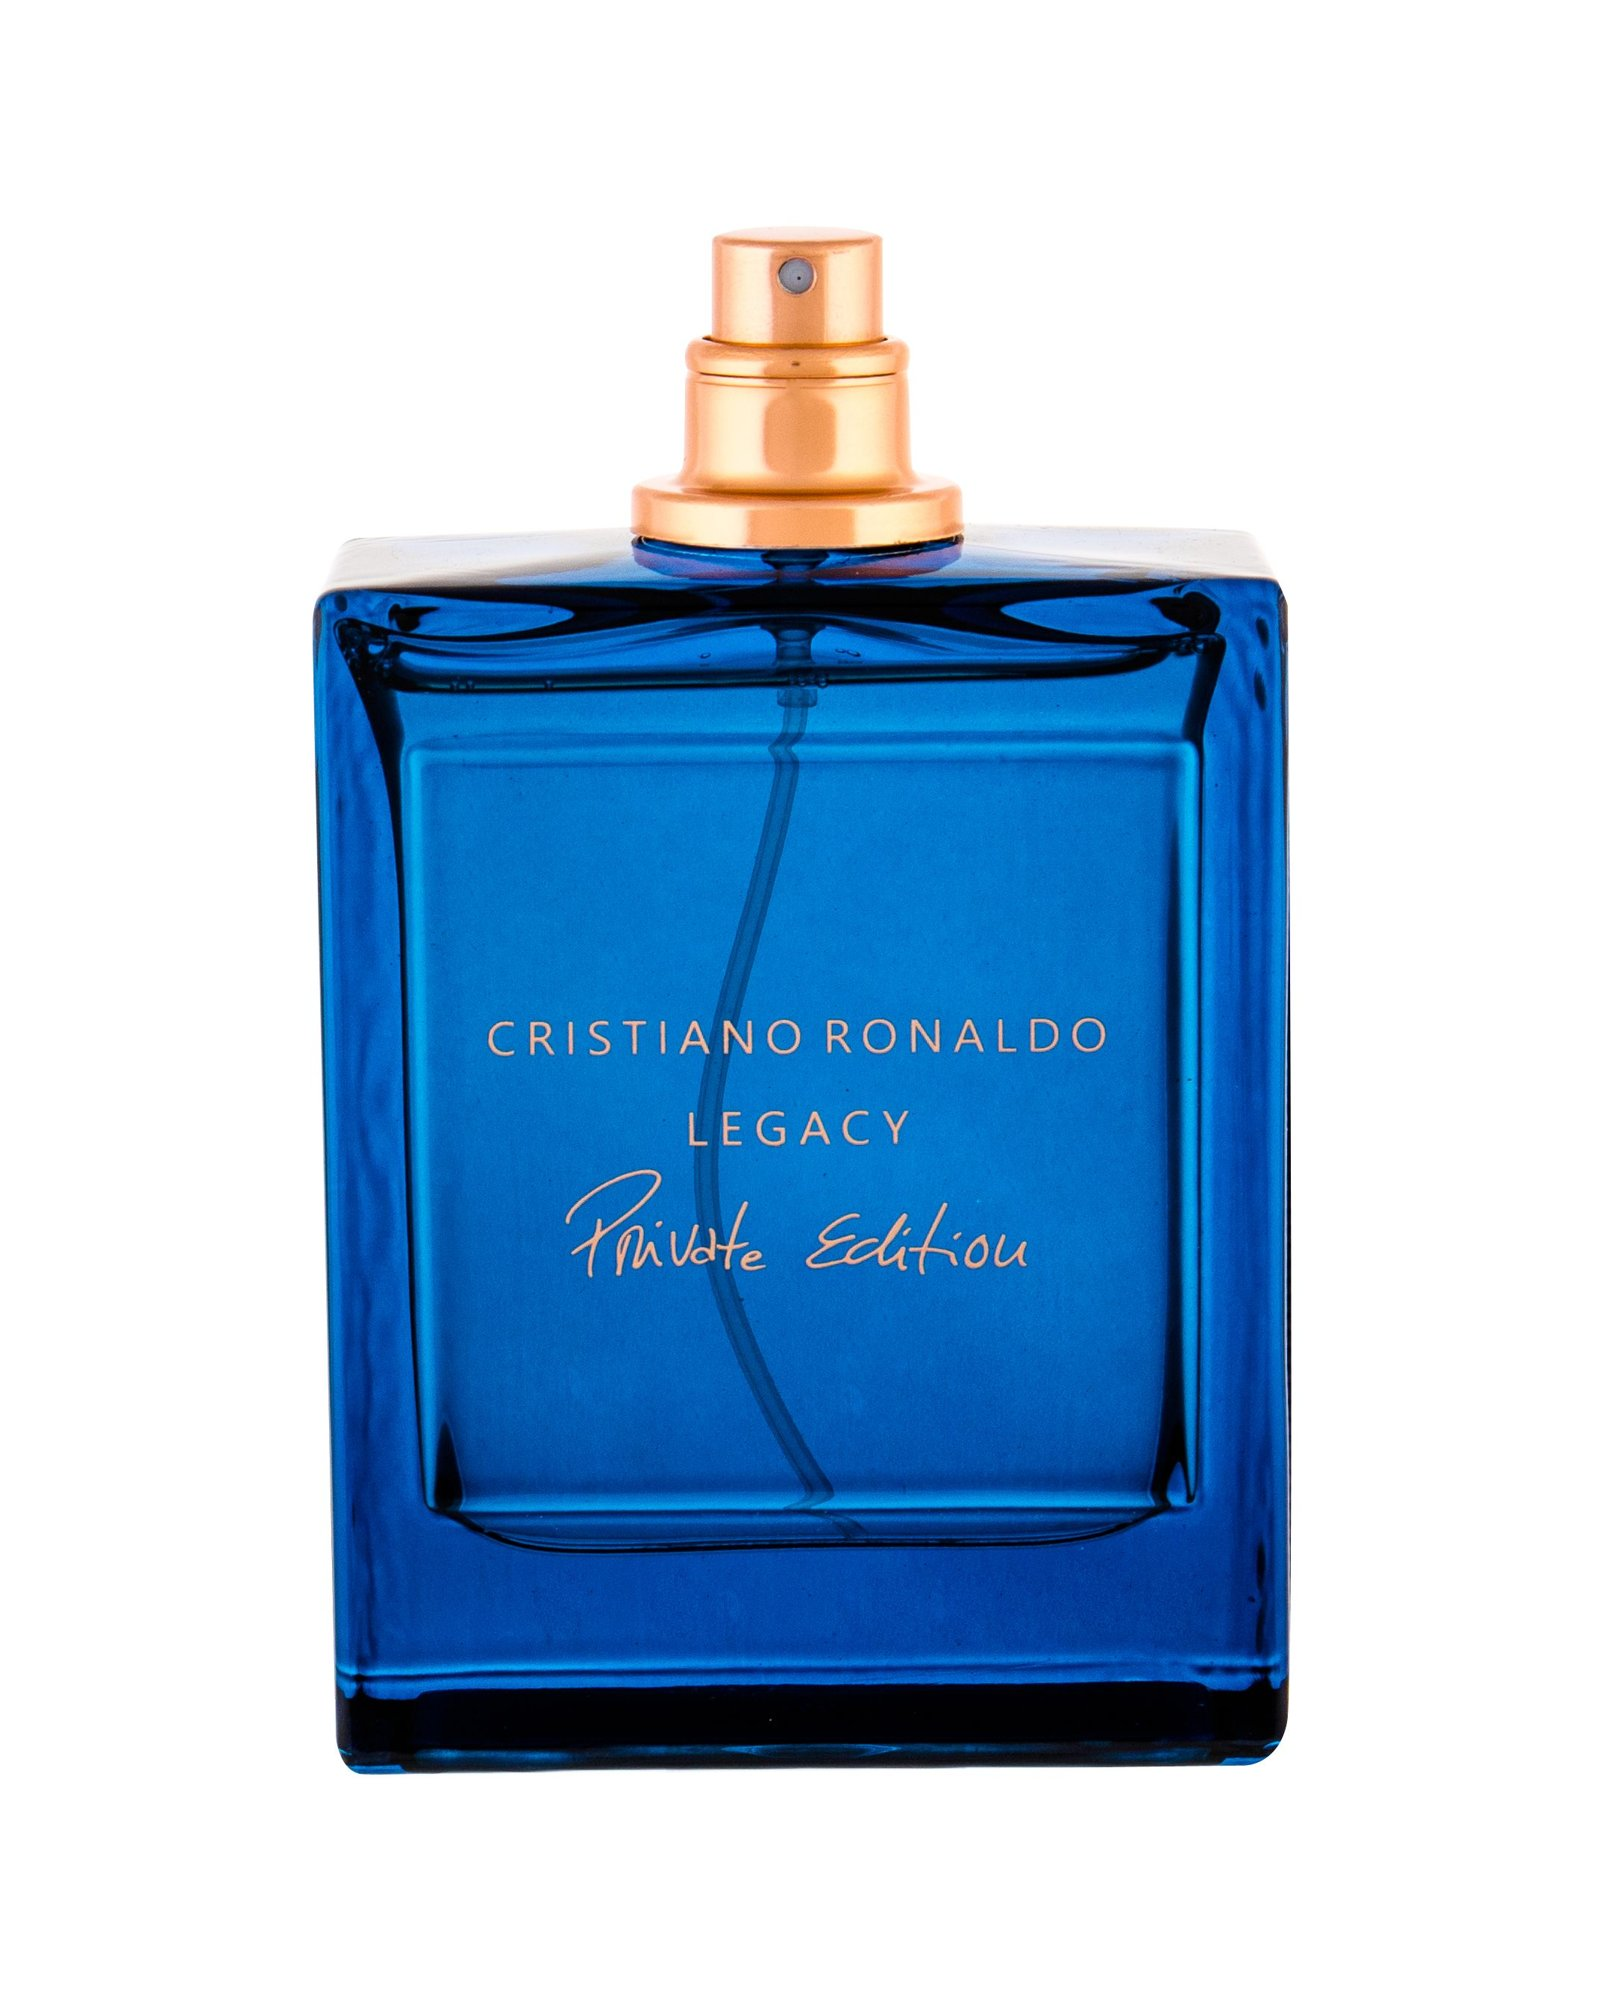 Cristiano Ronaldo Legacy Private Edition Eau de Parfum 100ml